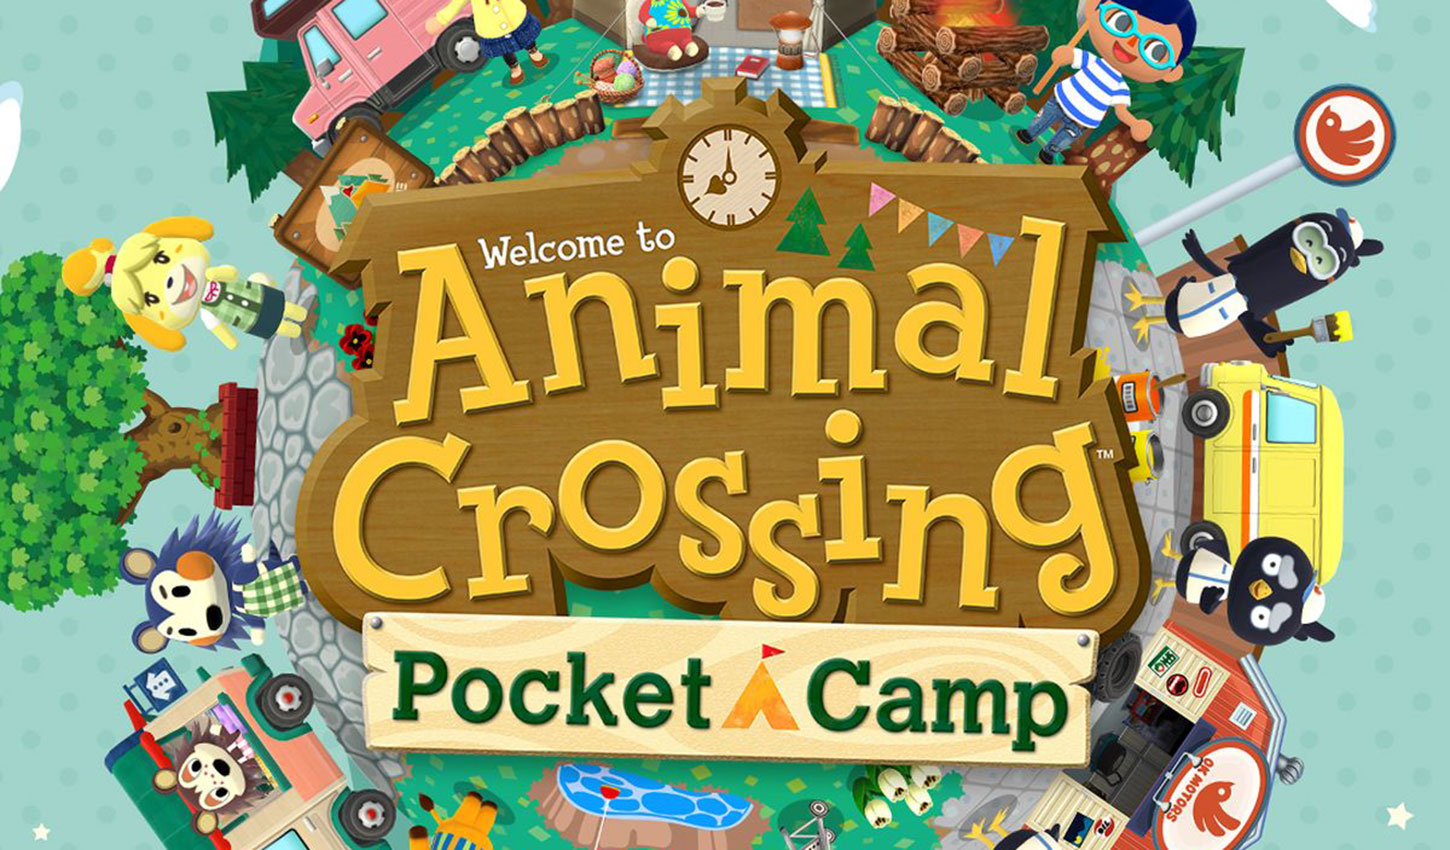 Animal Crossing Pocket Camp Title Pocket Camp Has Made $10 Million So Far, One Third as Much as Fire Emblem Heroes at Launch - animal crossing launch revenue hero - Pocket Camp Has Made $10 Million So Far, One Third as Much as Fire Emblem Heroes at Launch